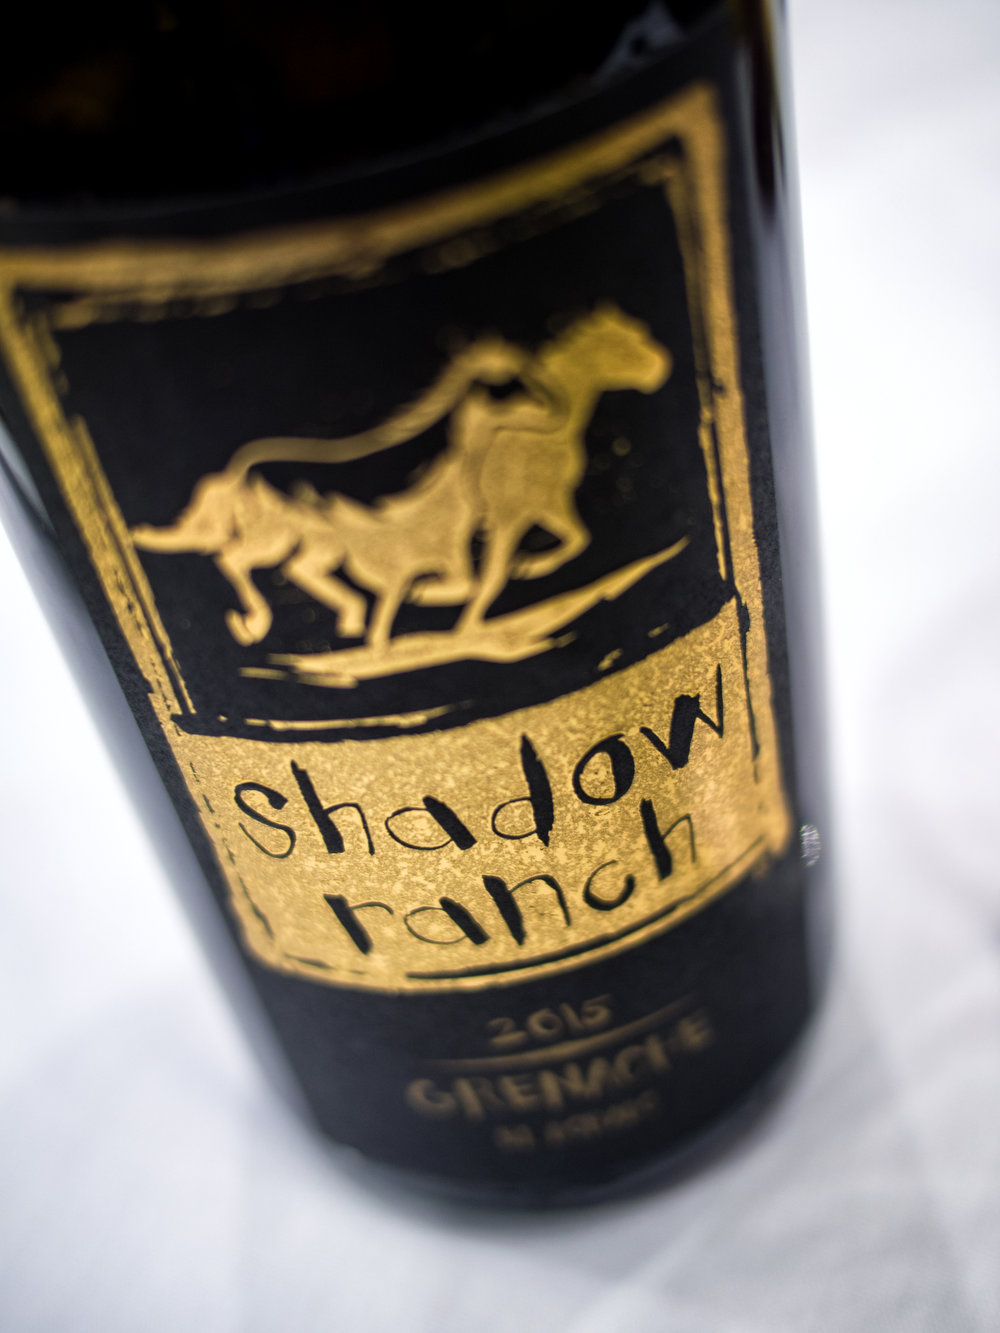 Musings by the Glass - Wines from Wine Bloggers Conference - Shadow Rance Grenache El Dorado California